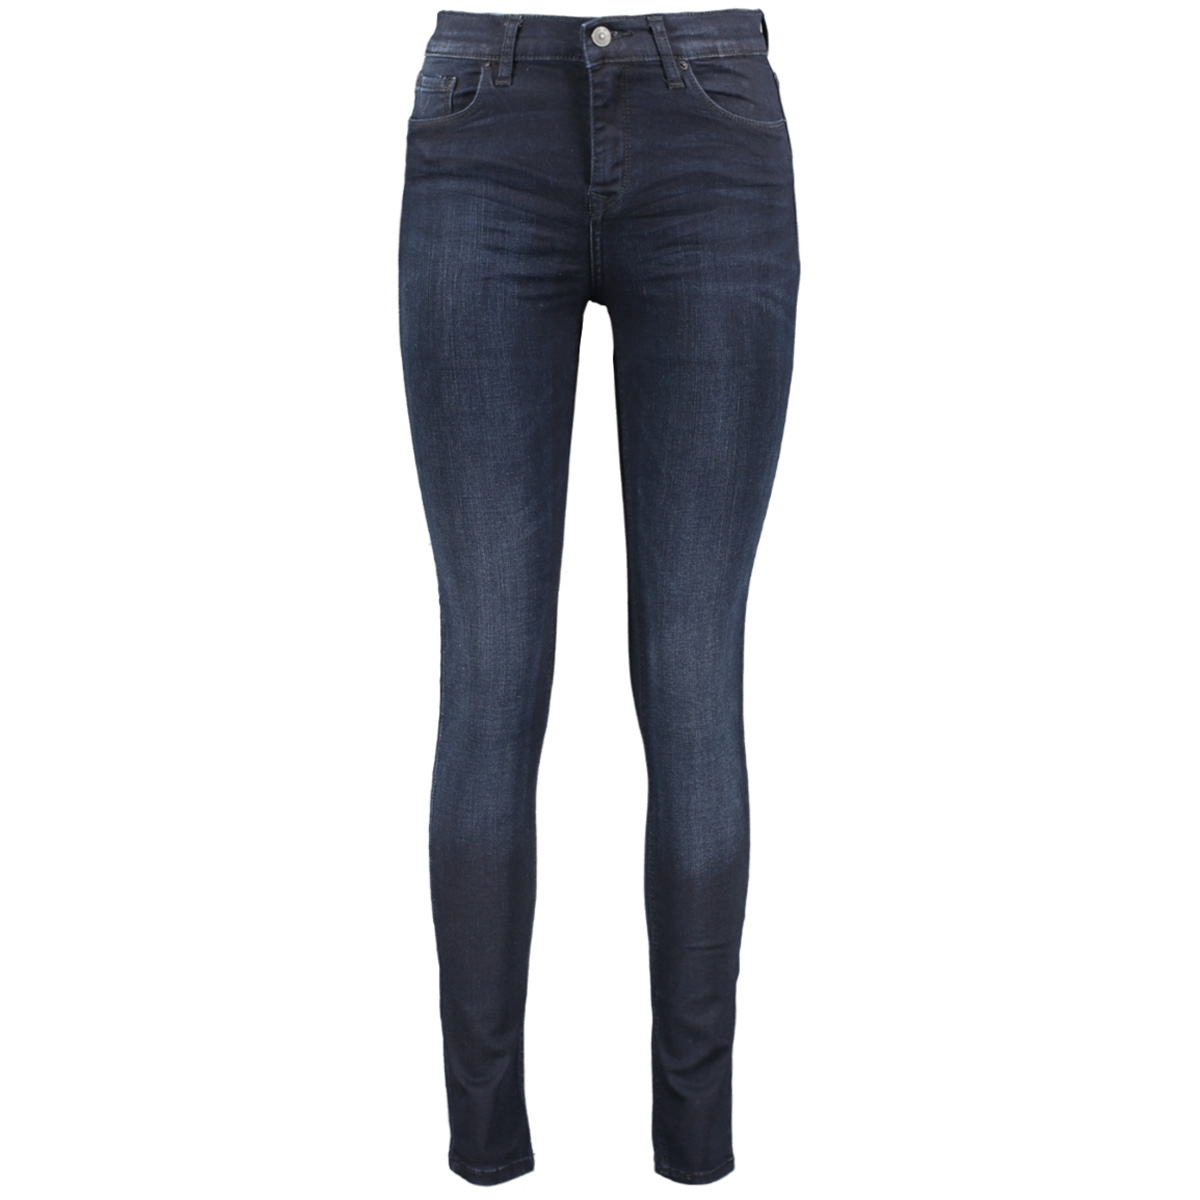 amy 1009 51316 14625 ltb jeans 51890